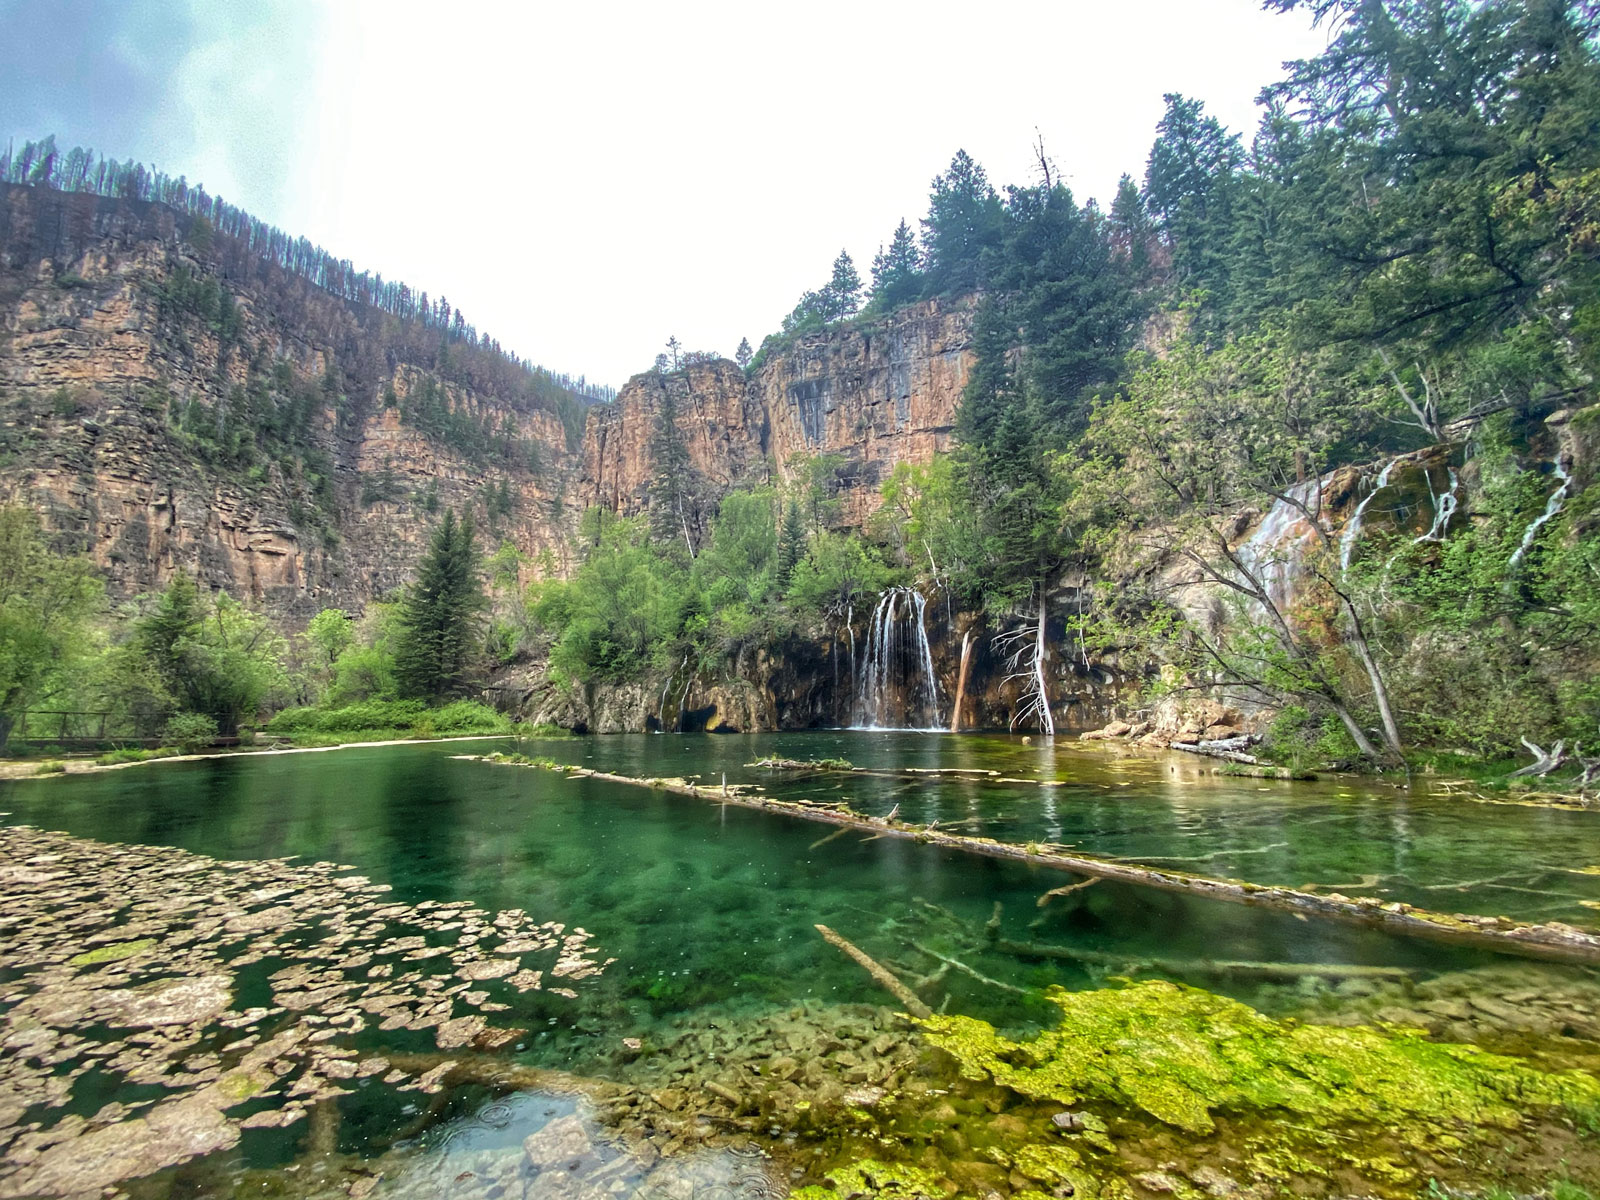 Hanging Lake should be a stop on any Colorado road trip. Reservations required.